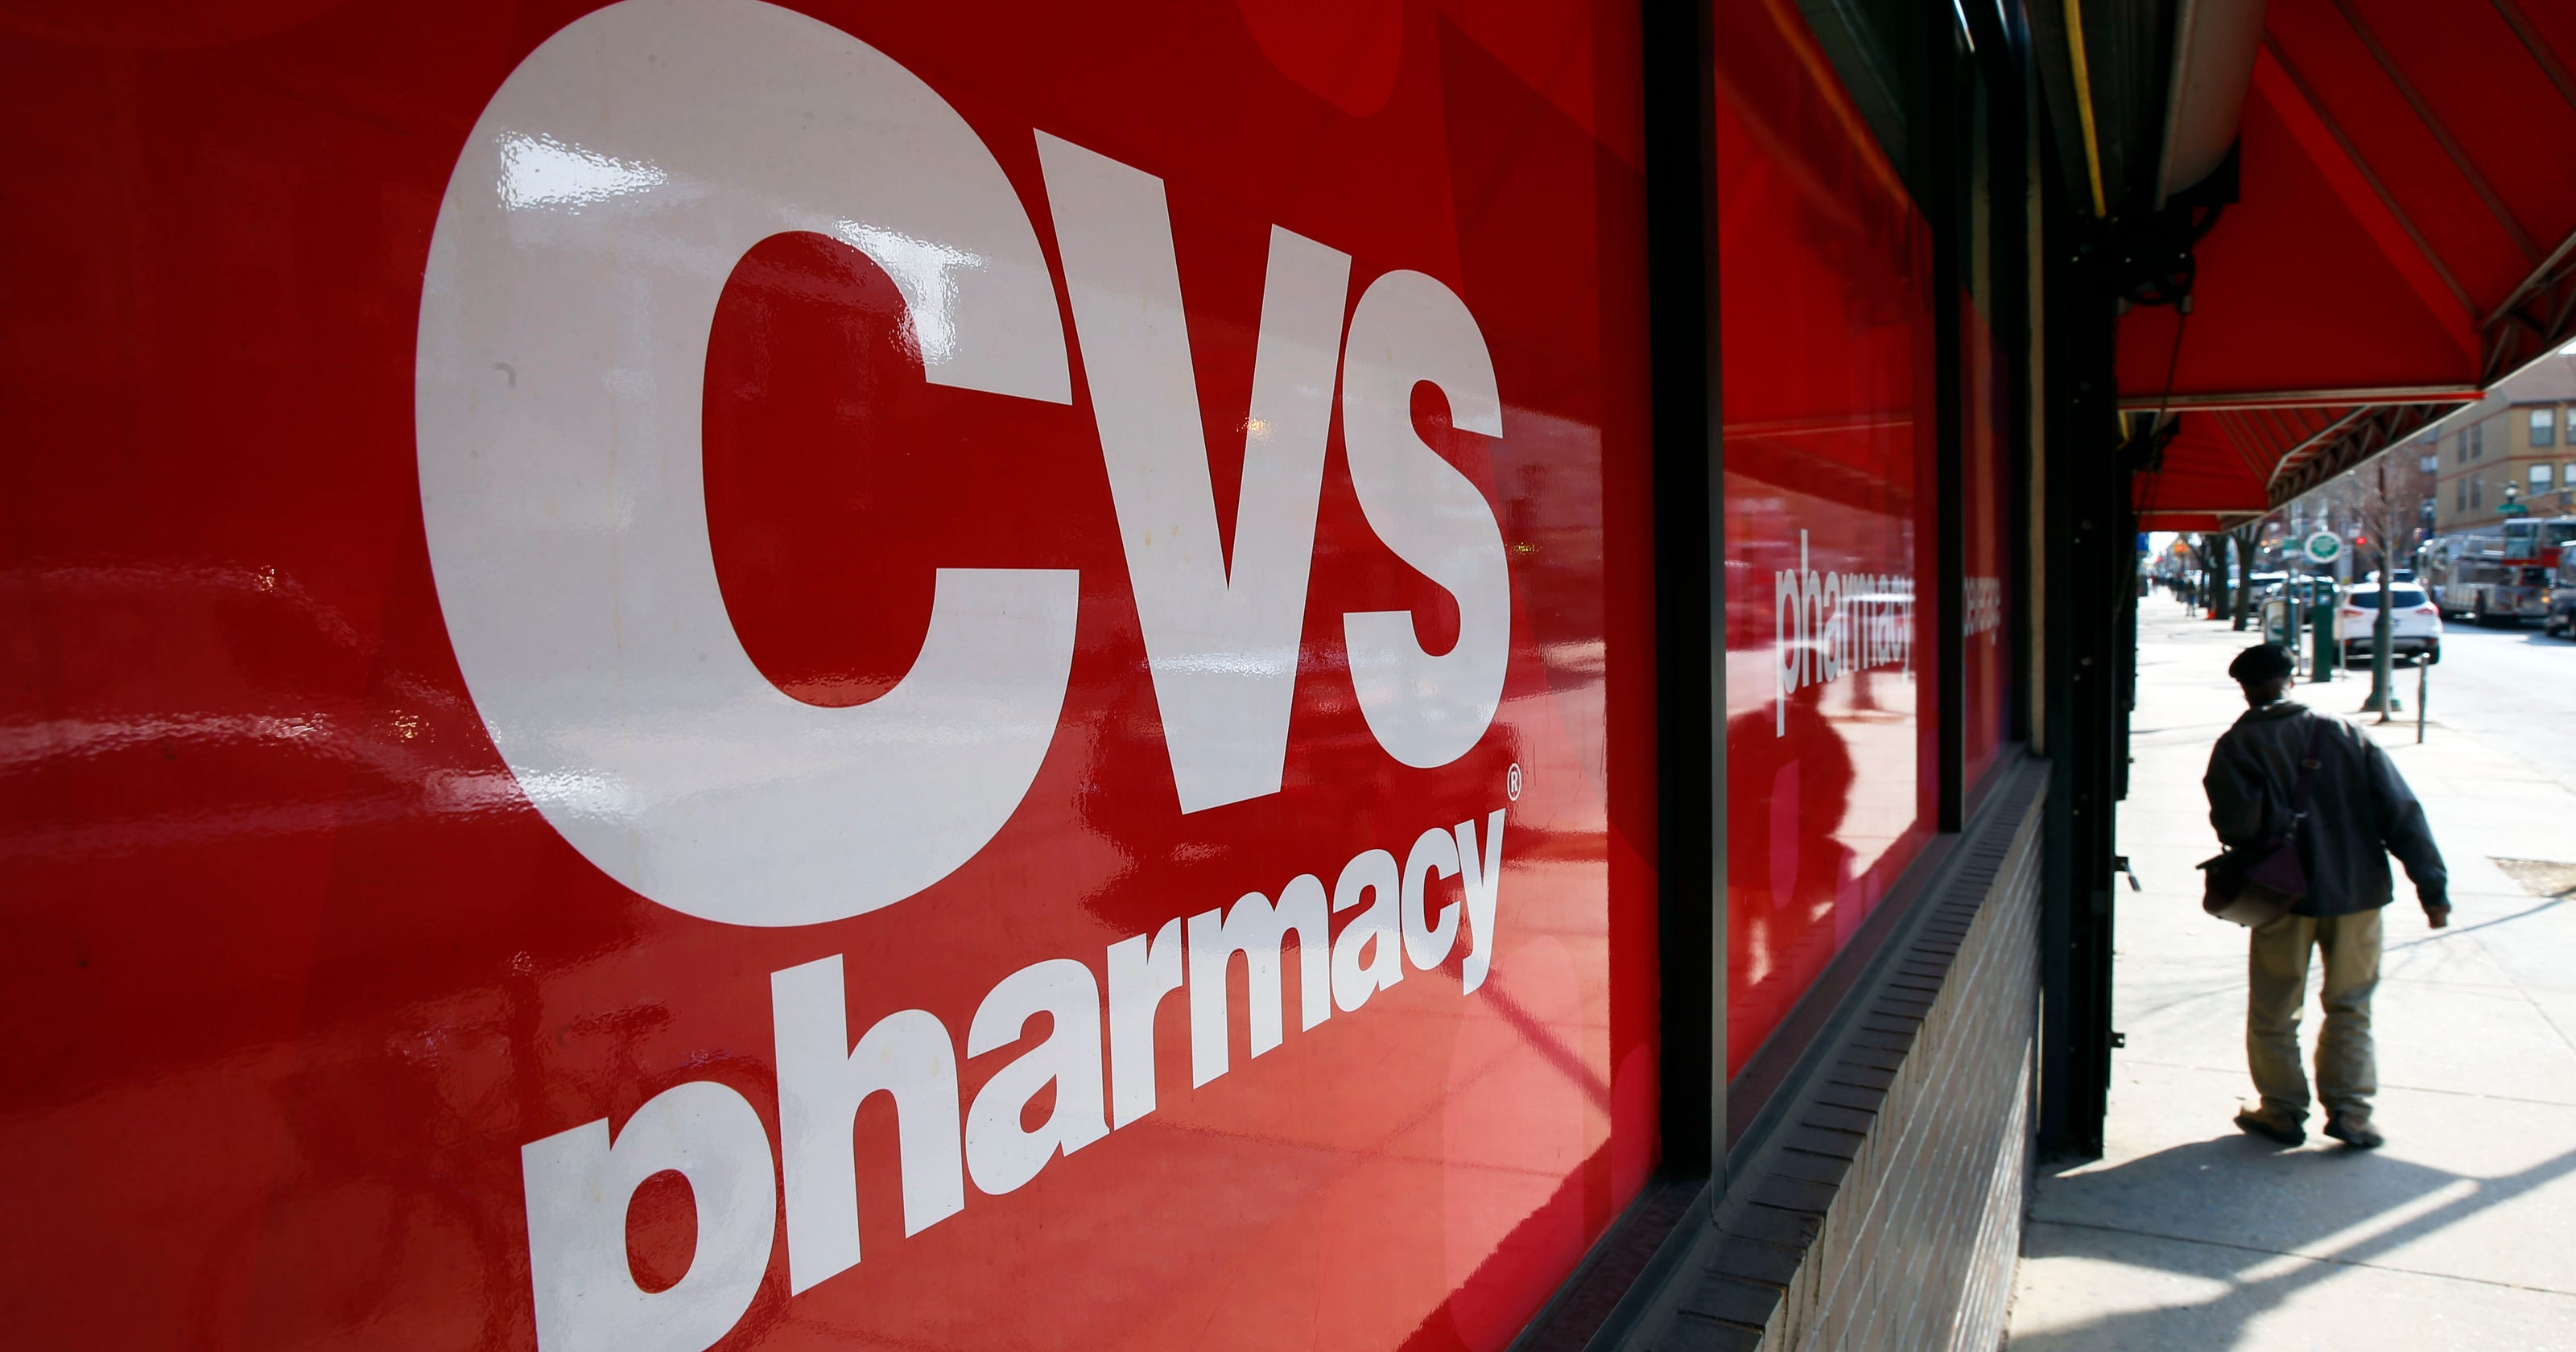 Aetna Stock Soars On Report Of Possible Acquisition By Cvs Health